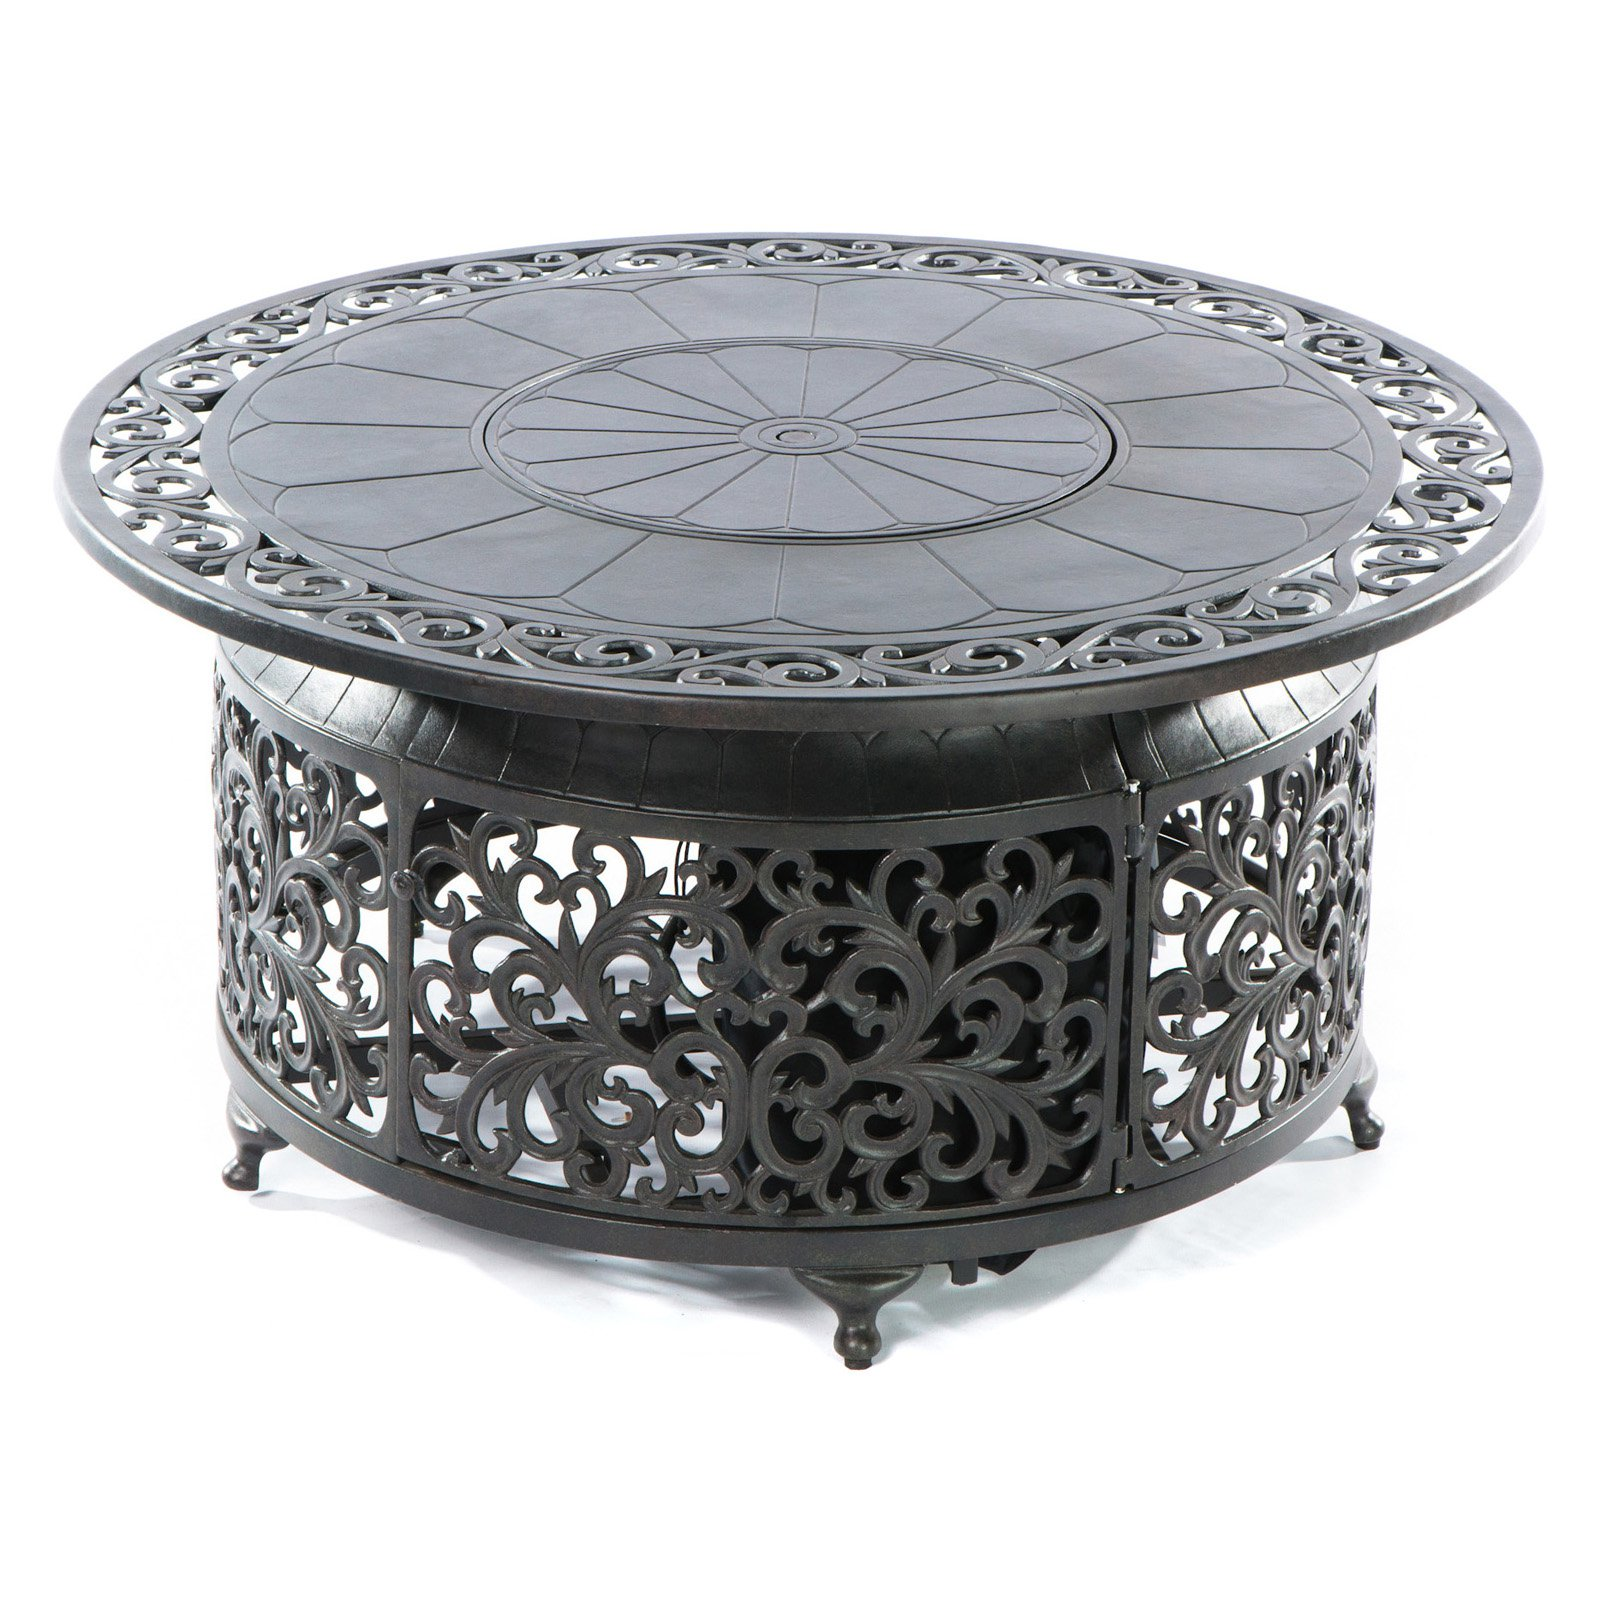 Alfresco Home Bellagio Cast Aluminum Diam Fire Pit Walmartcom - Cast aluminum gas fire pit table